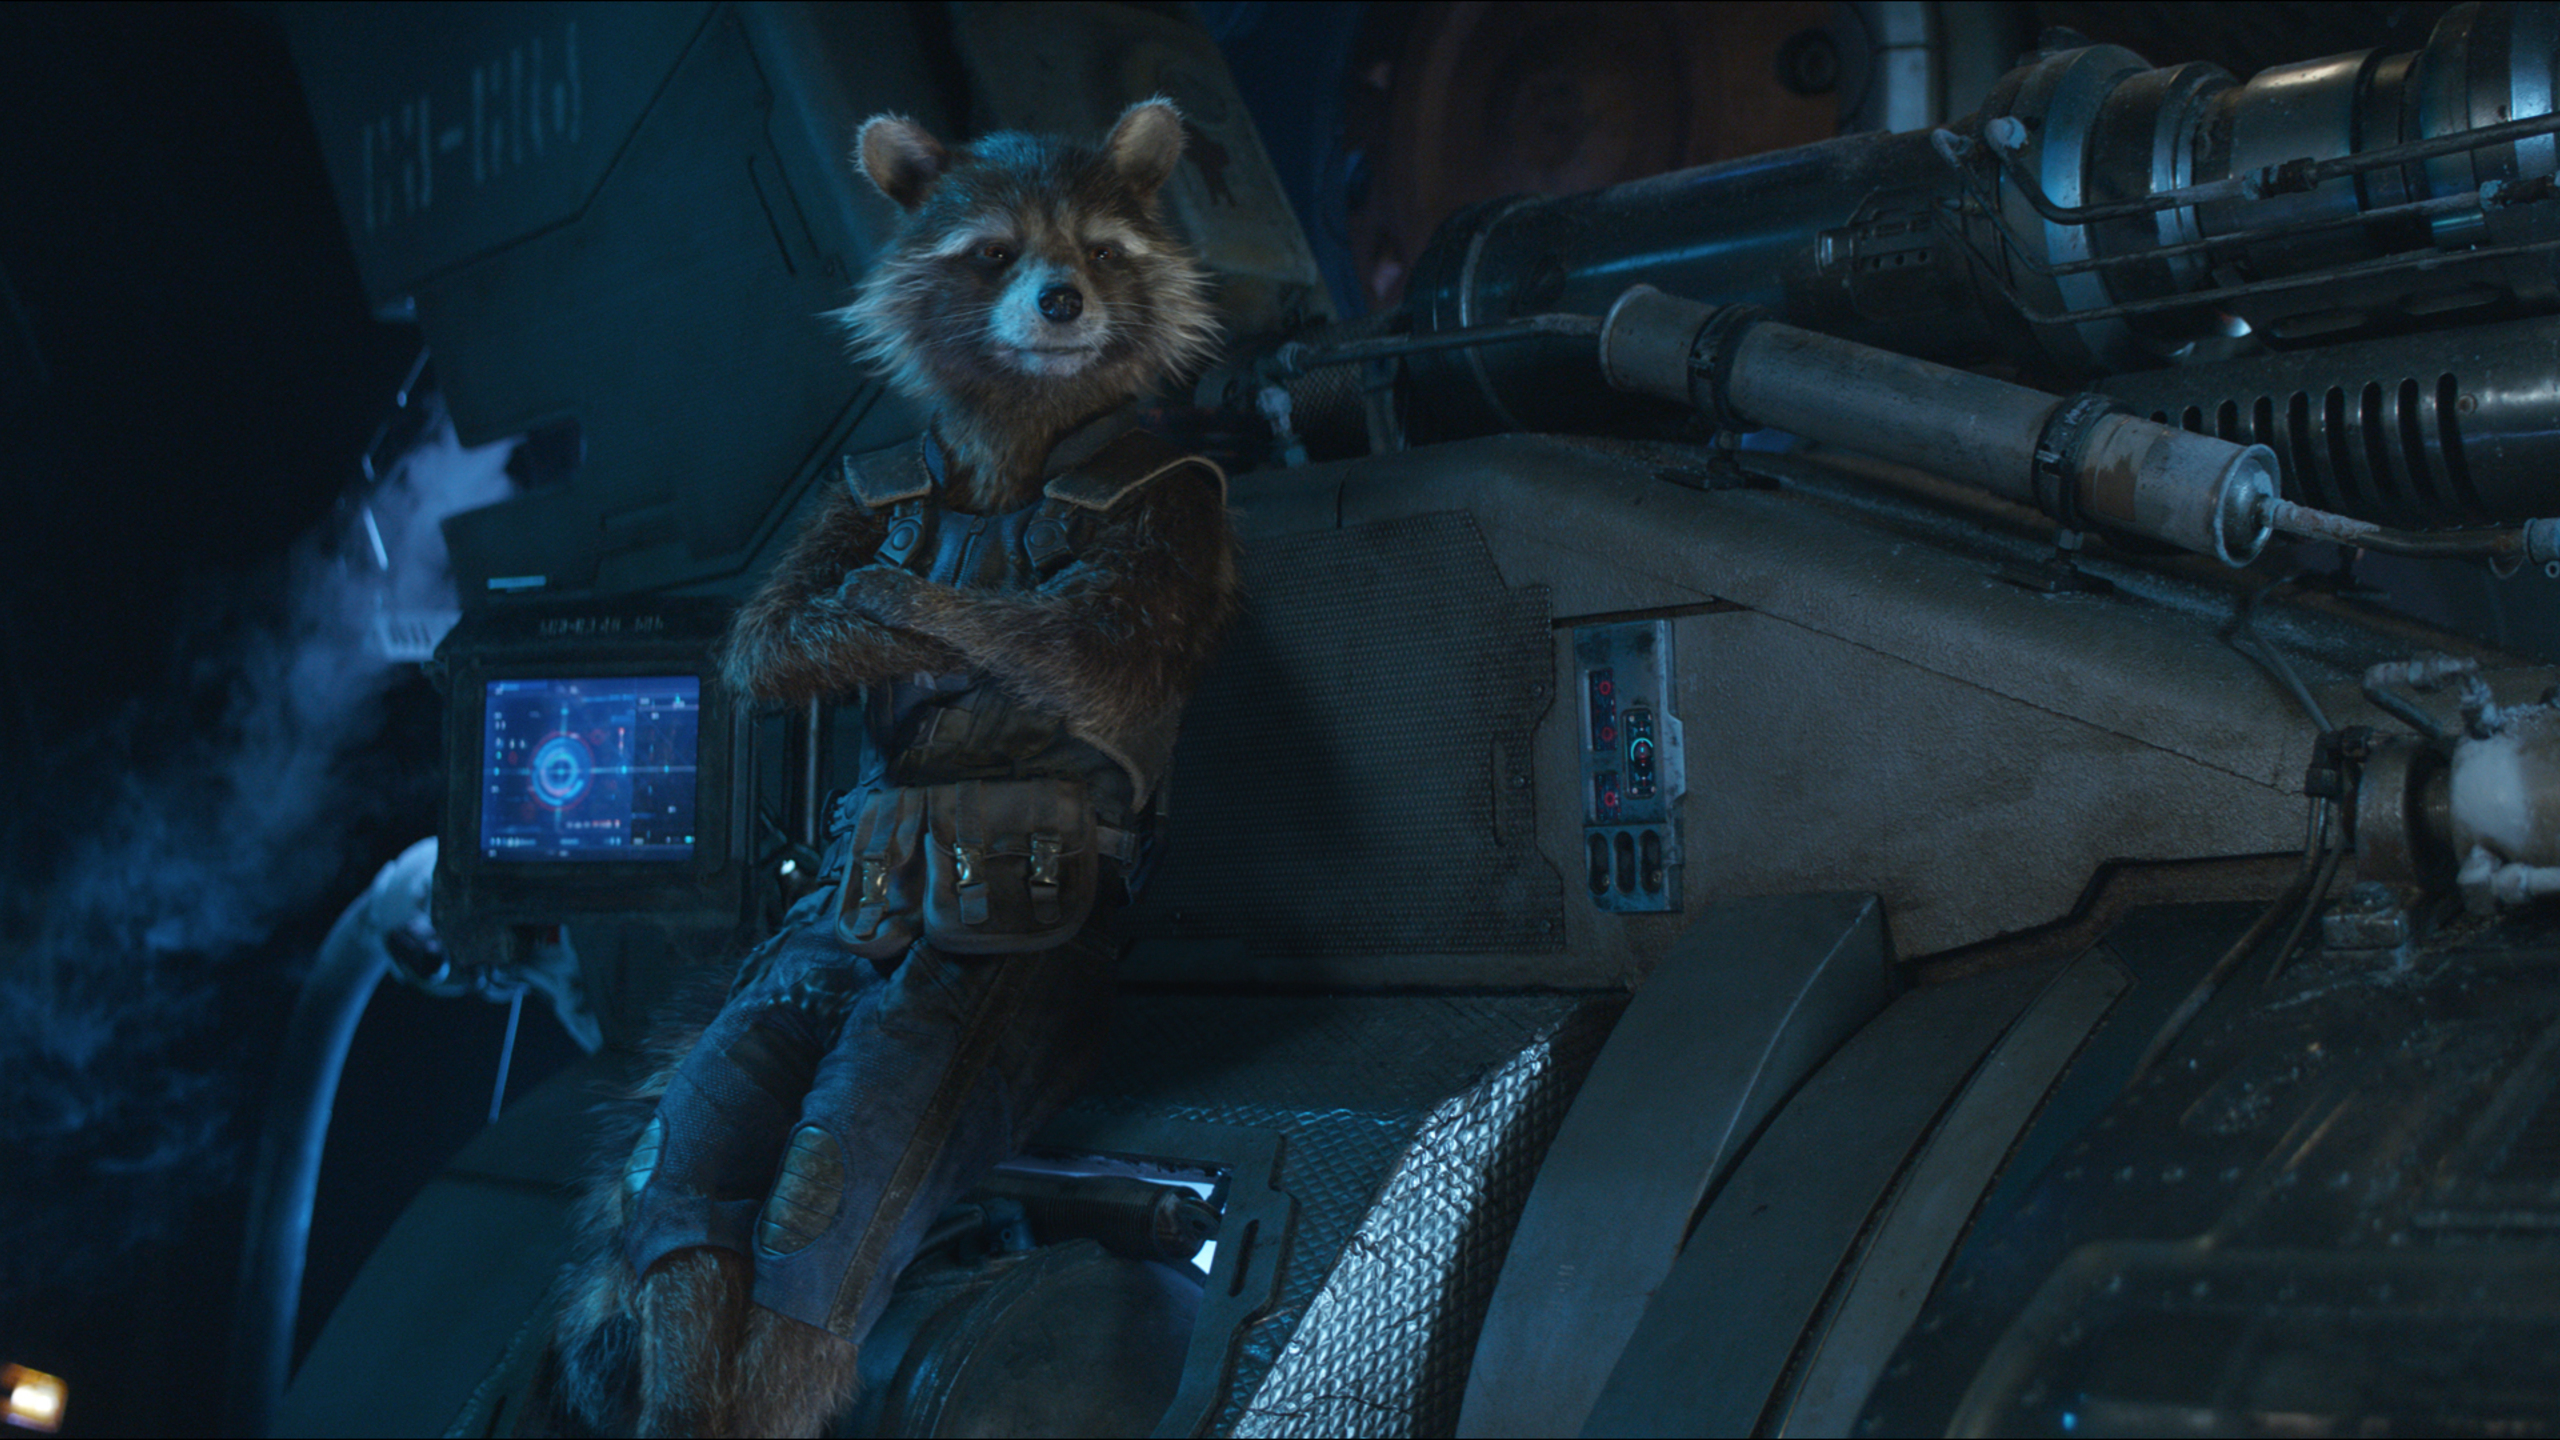 Rocket Raccoon In Avengers Infinity War Oi